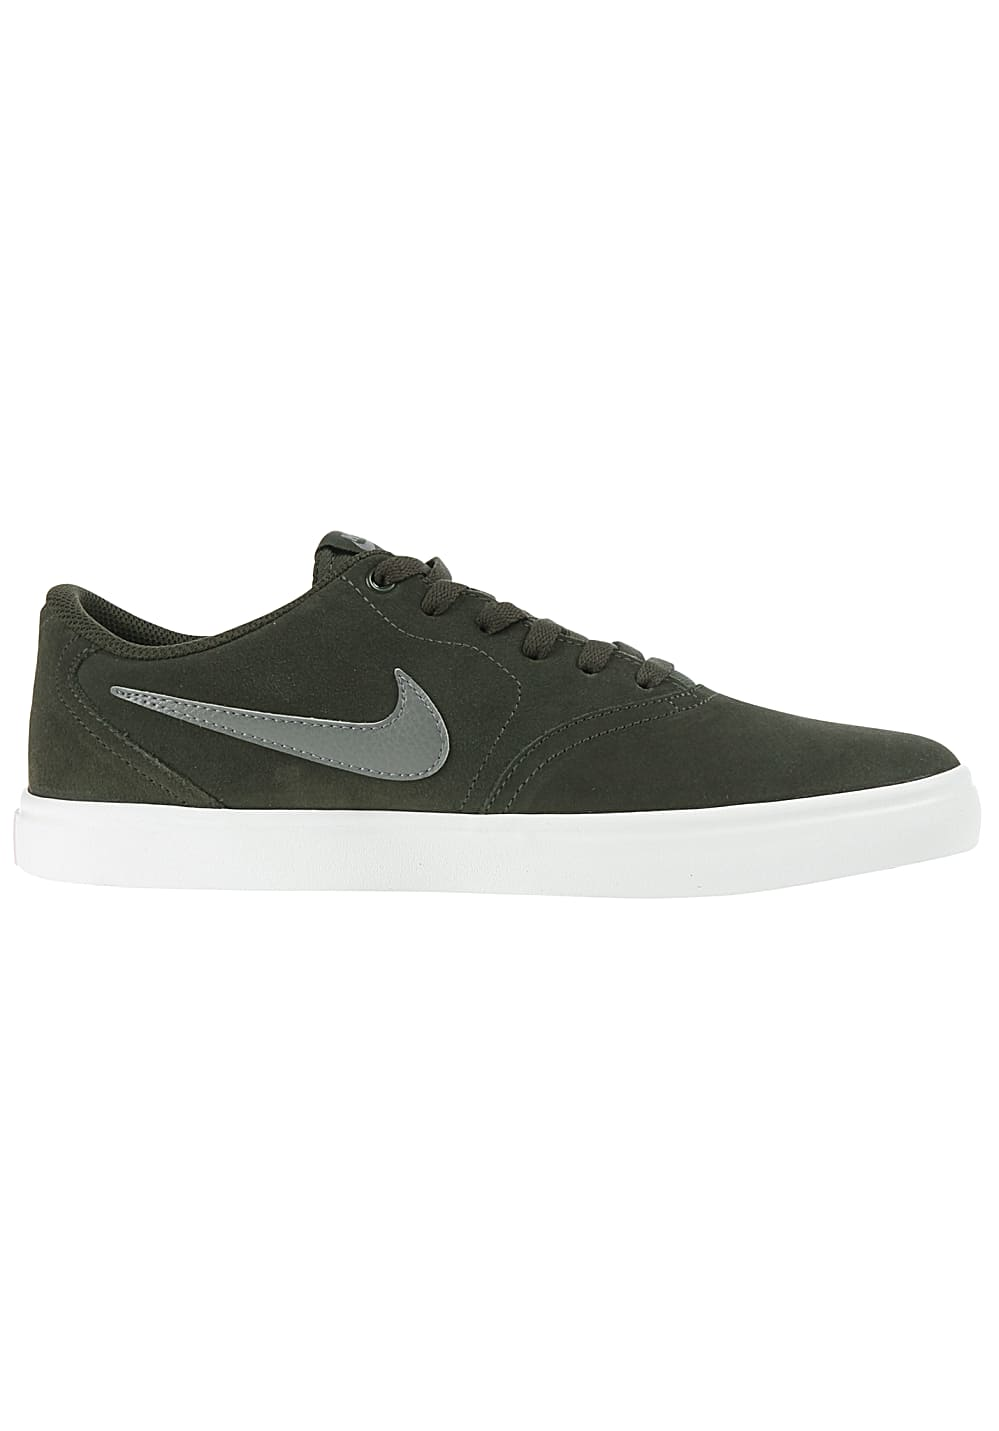 6065ab1e2e63 Next. NIKE SB. Check Solar - Sneakers for Men. €57.47. incl. VAT plus  shipping costs. Green Brown. Size Chart